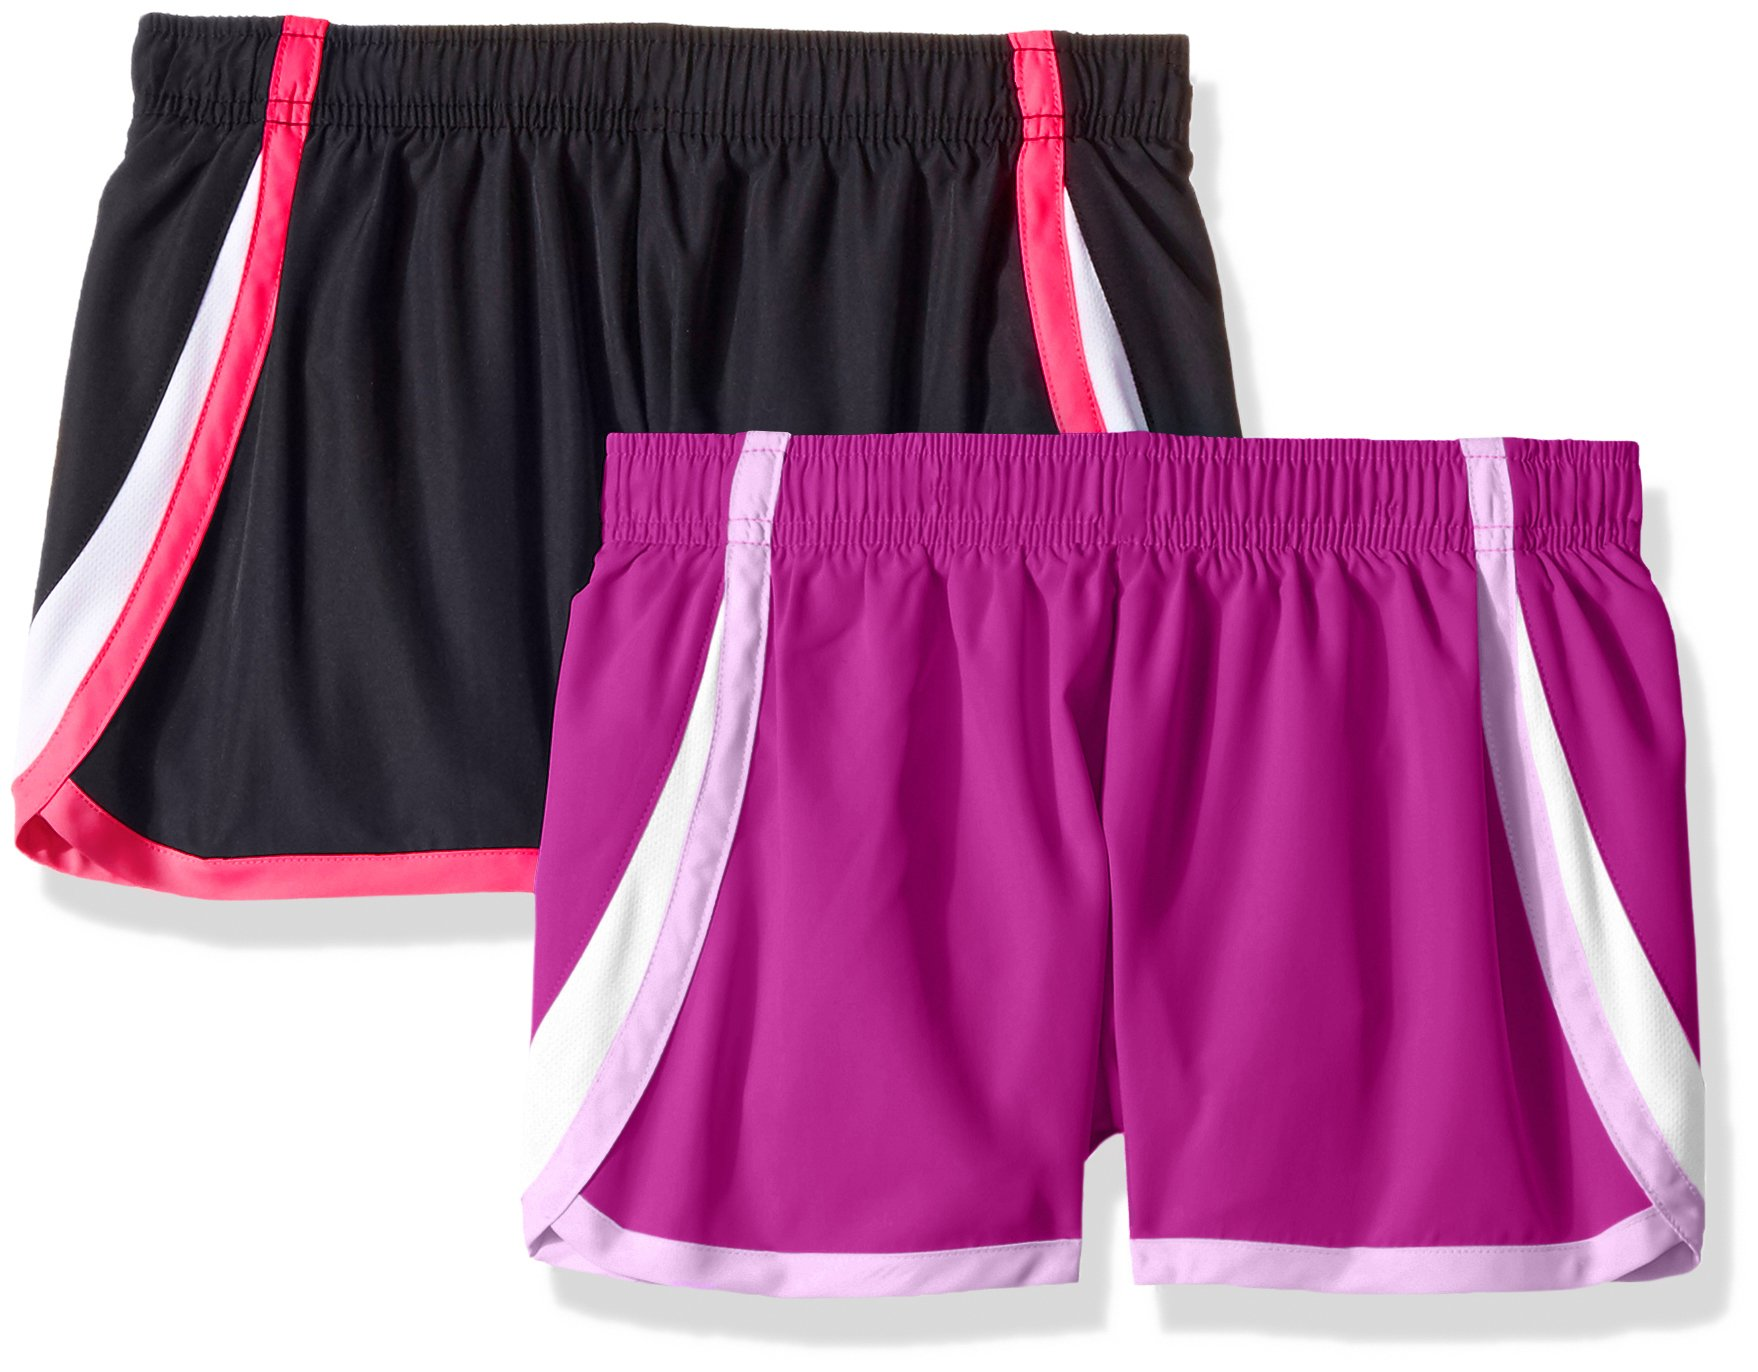 Hanes Girls' Big Sport Woven Performance Running Short (Pack of 2), Purple Cactus Flower/Black, M